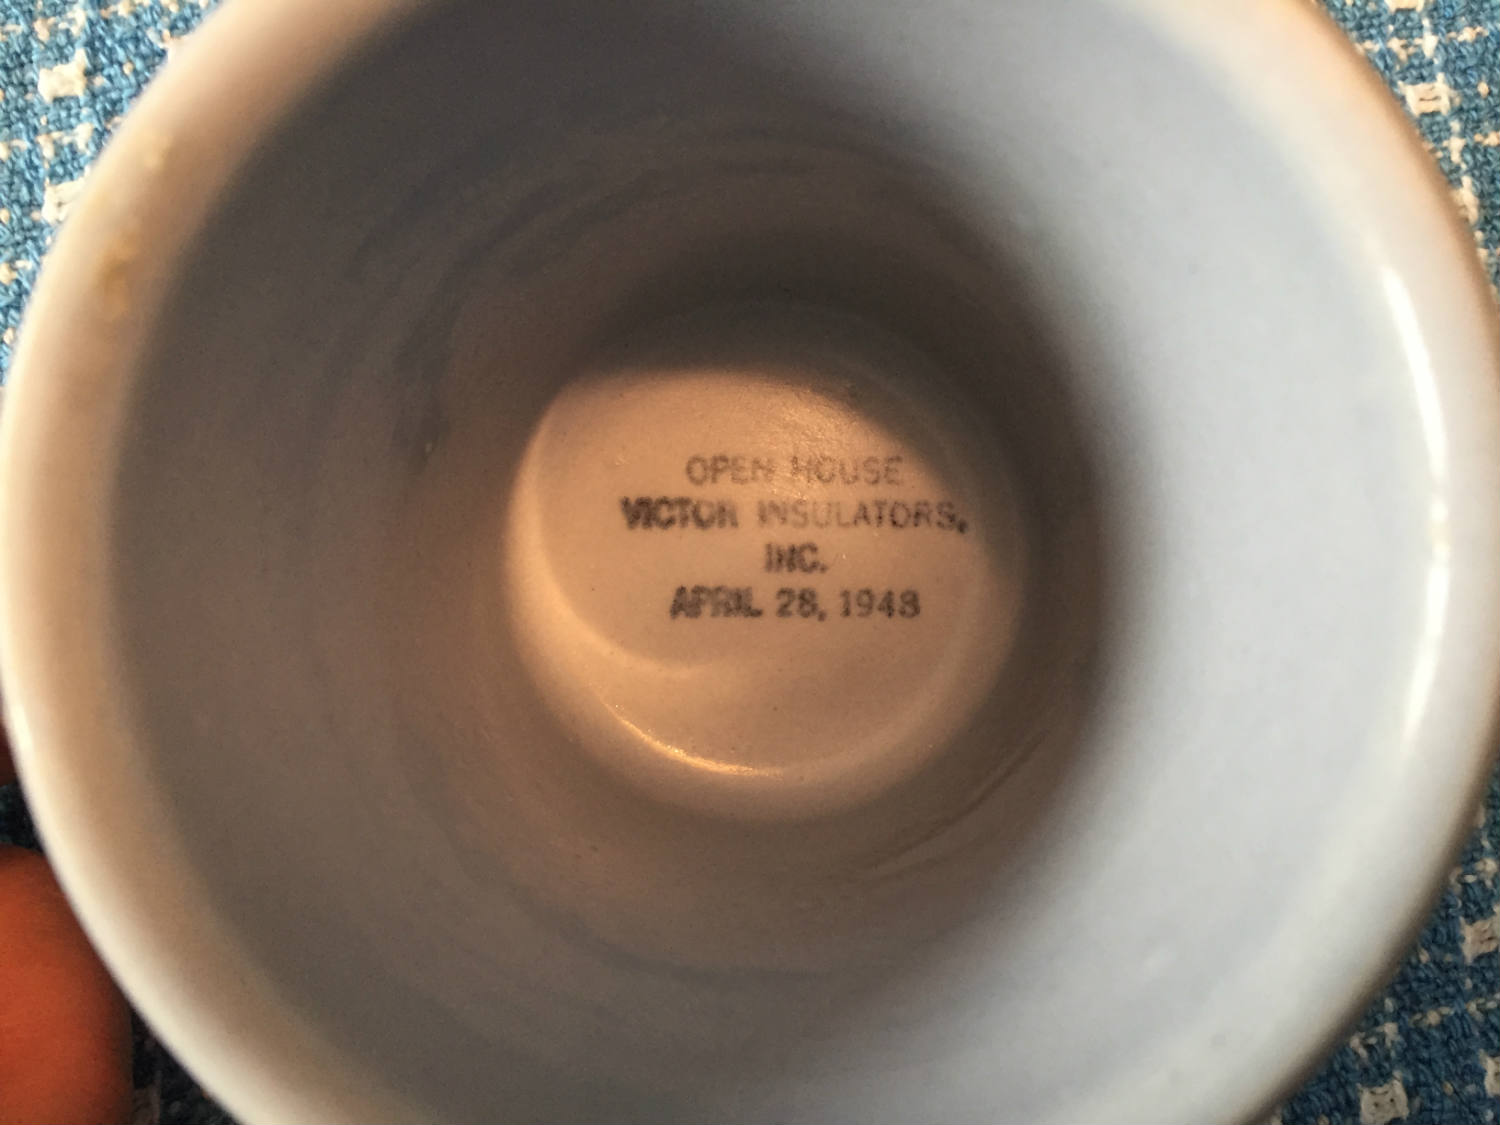 Special Edition Victor Coffee Mug from 1948